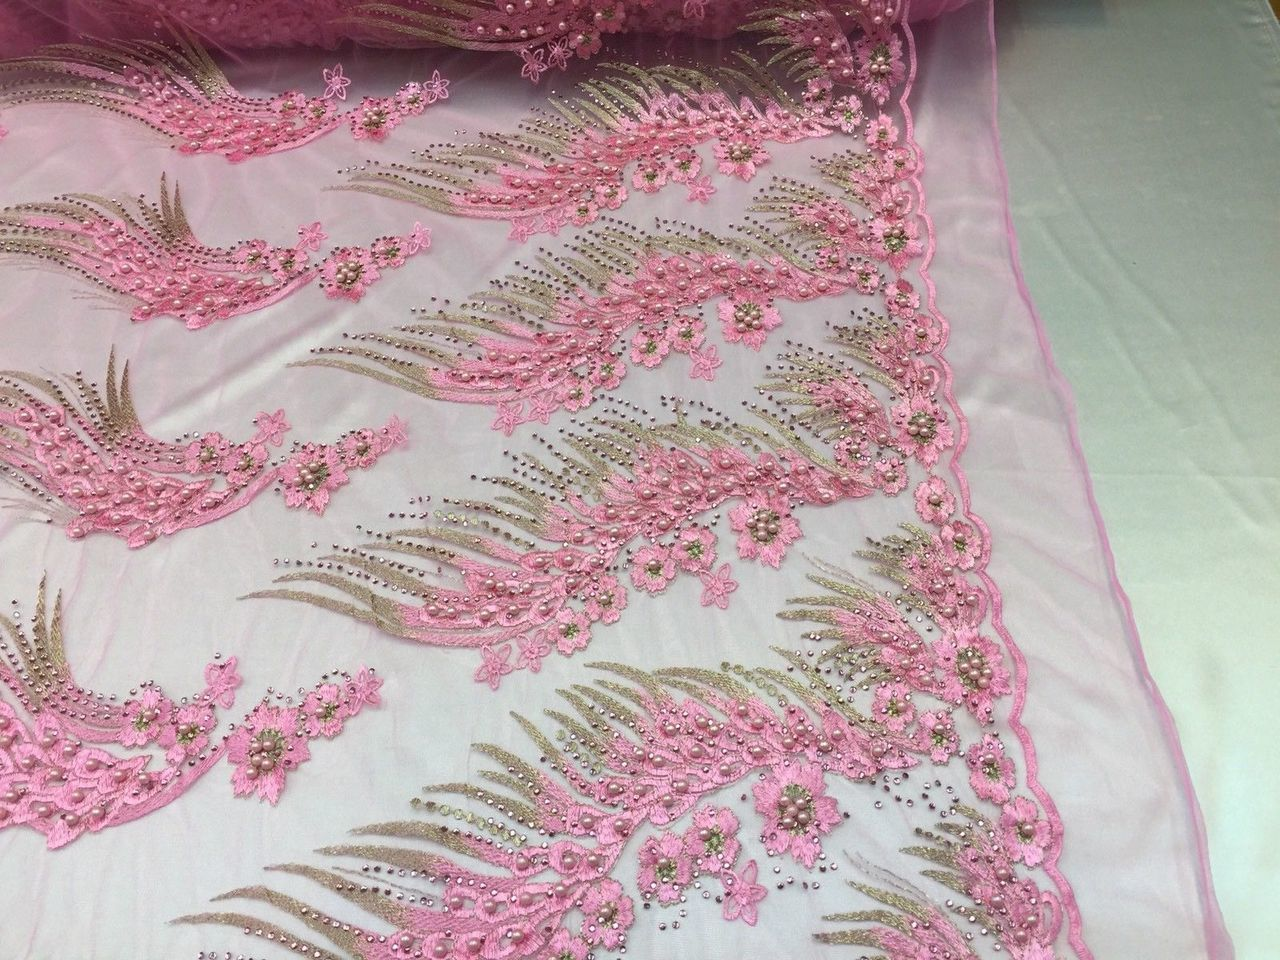 Her Majesty Designs Super Luxurious Beaded Bridal Wedding Mesh Lace Pink. 1 Yard - KINGDOM OF FABRICS